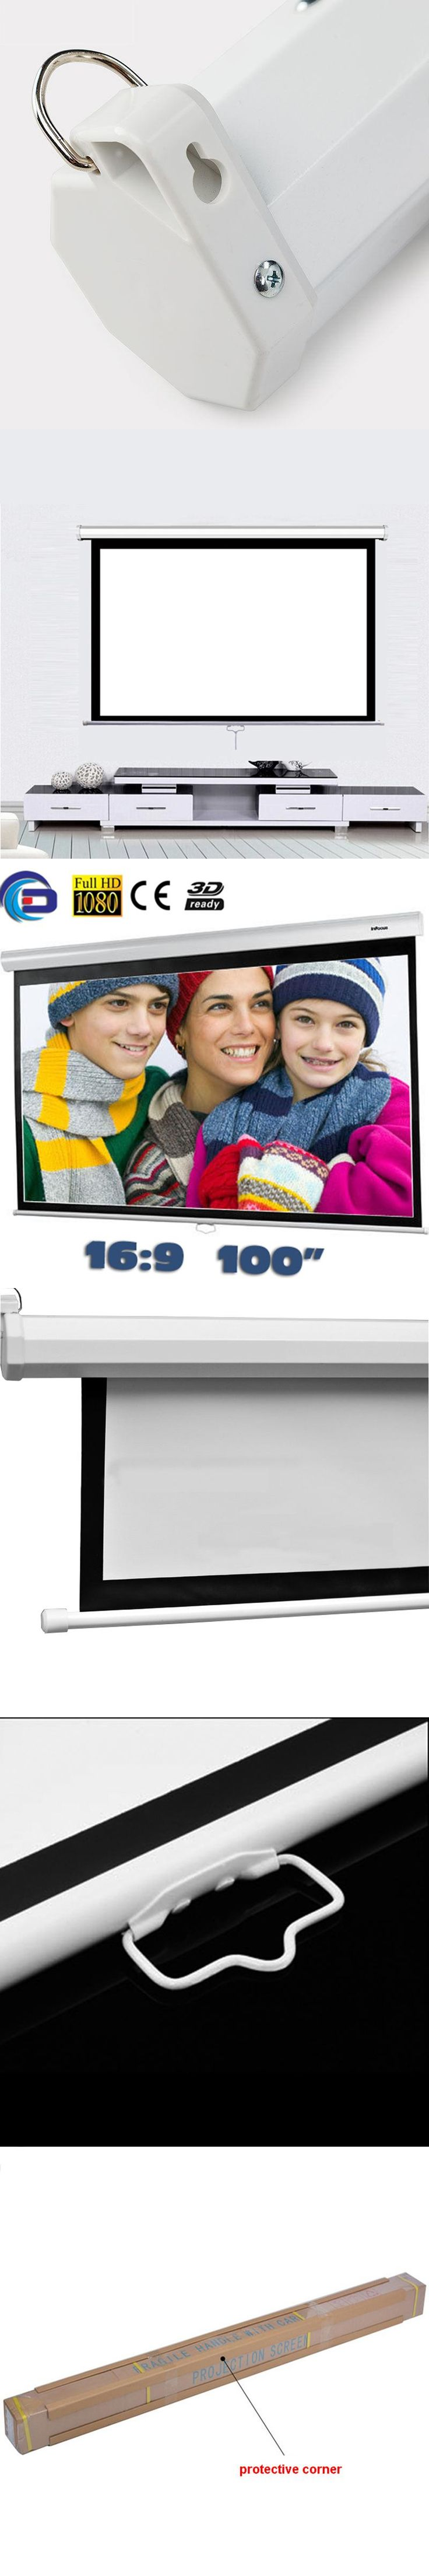 100 inch 16:9 Manual self-locking Projection Screen matt White pantalla proyeccion for HD projector Pull Down Movie Screens